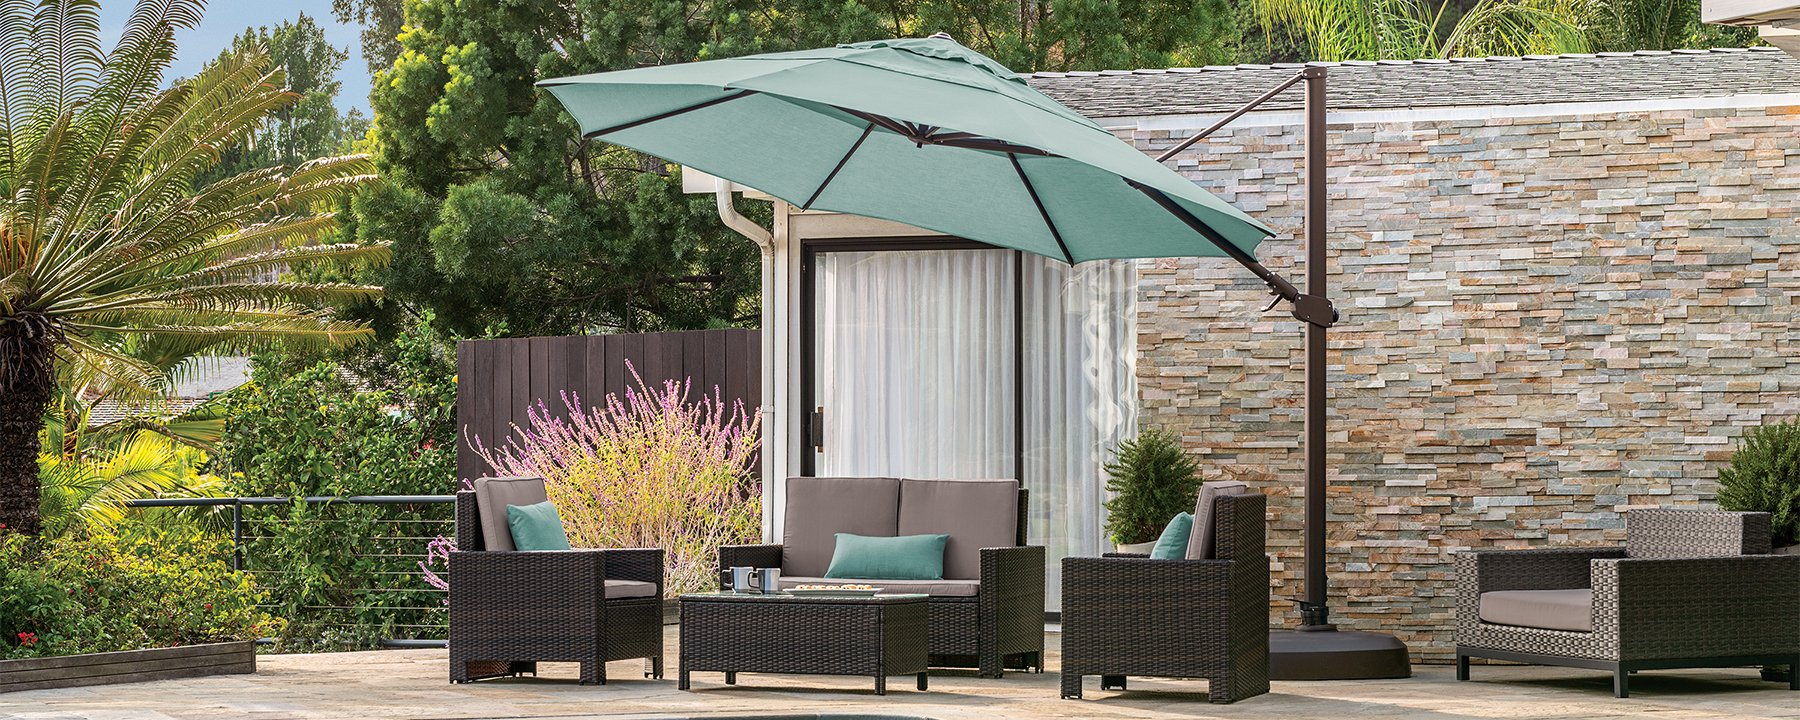 Treasure Garden Umbrellas in a great selection of sizes, styles and colors